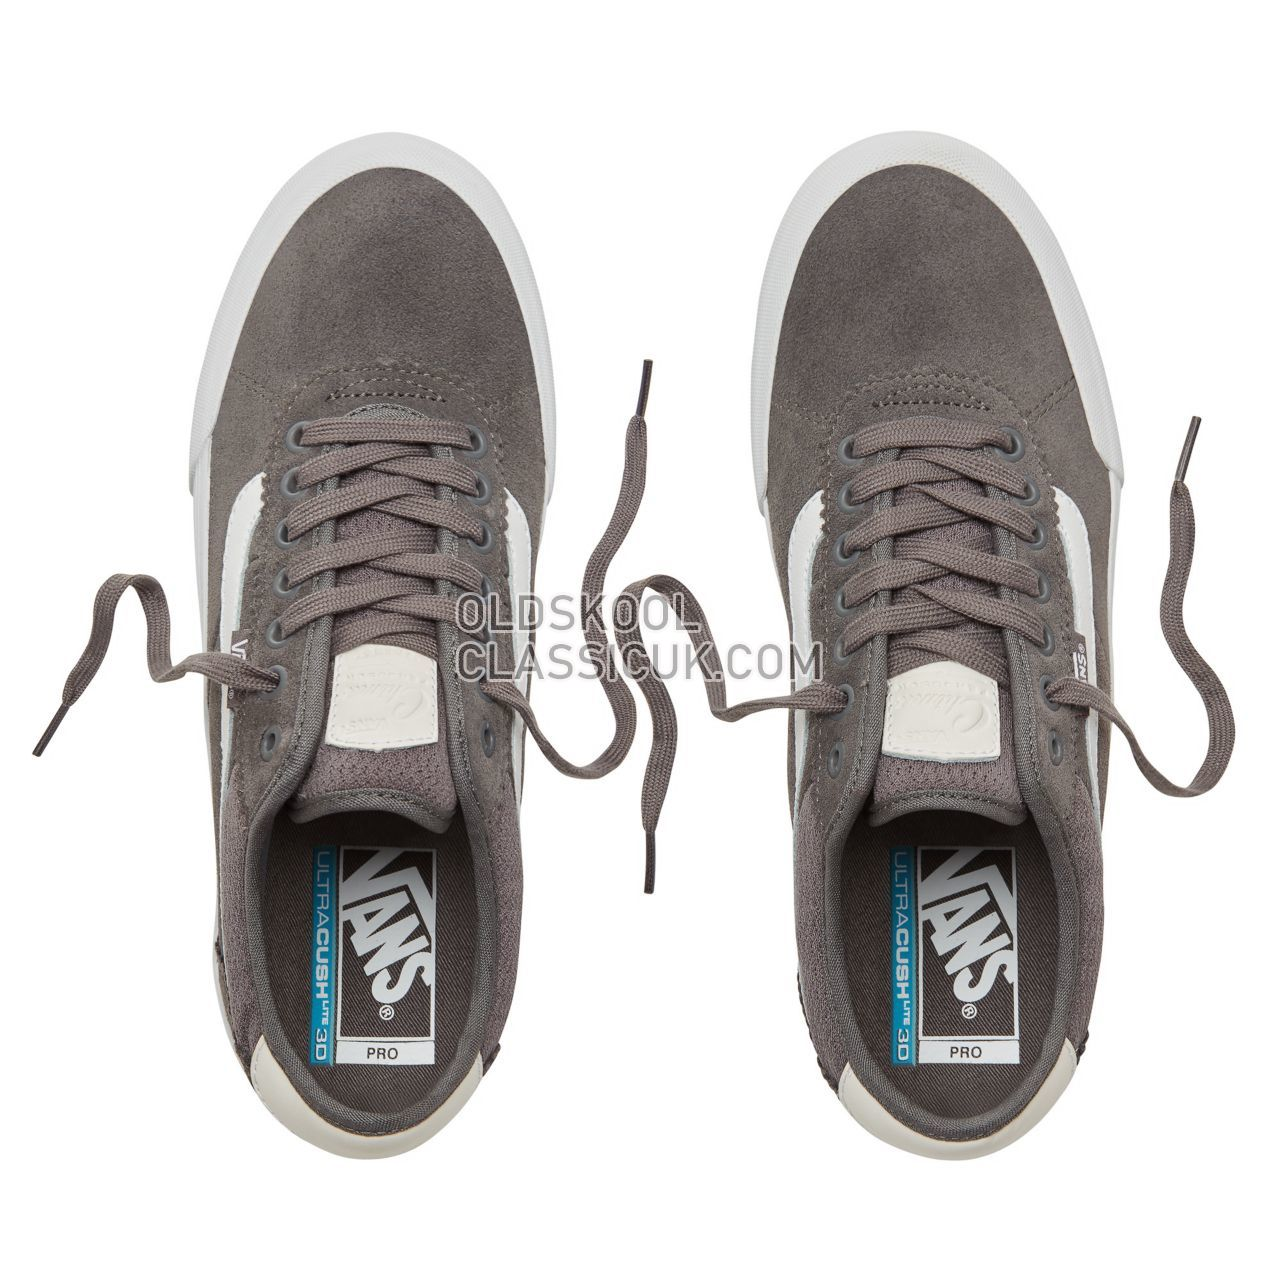 Vans Chima Pro 2 Sneakers Mens Pewter/True White VA3MTI195 Shoes